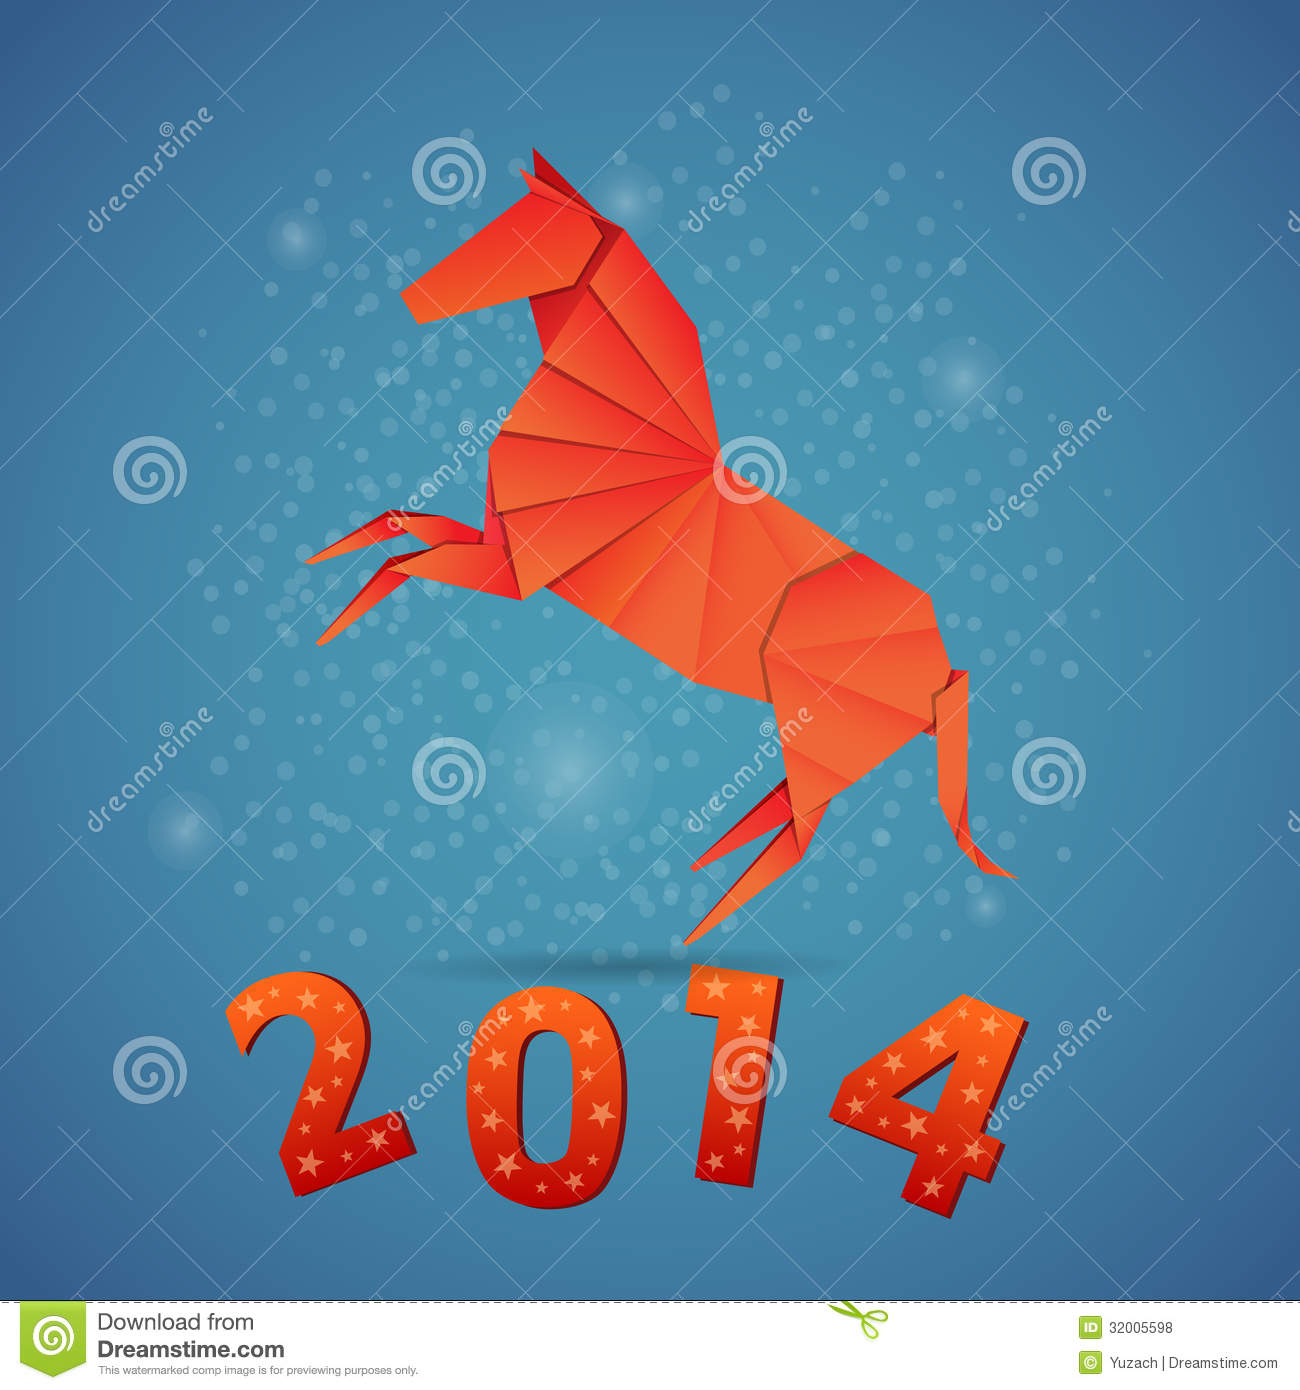 new year origami paper horse 2014 royalty free stock